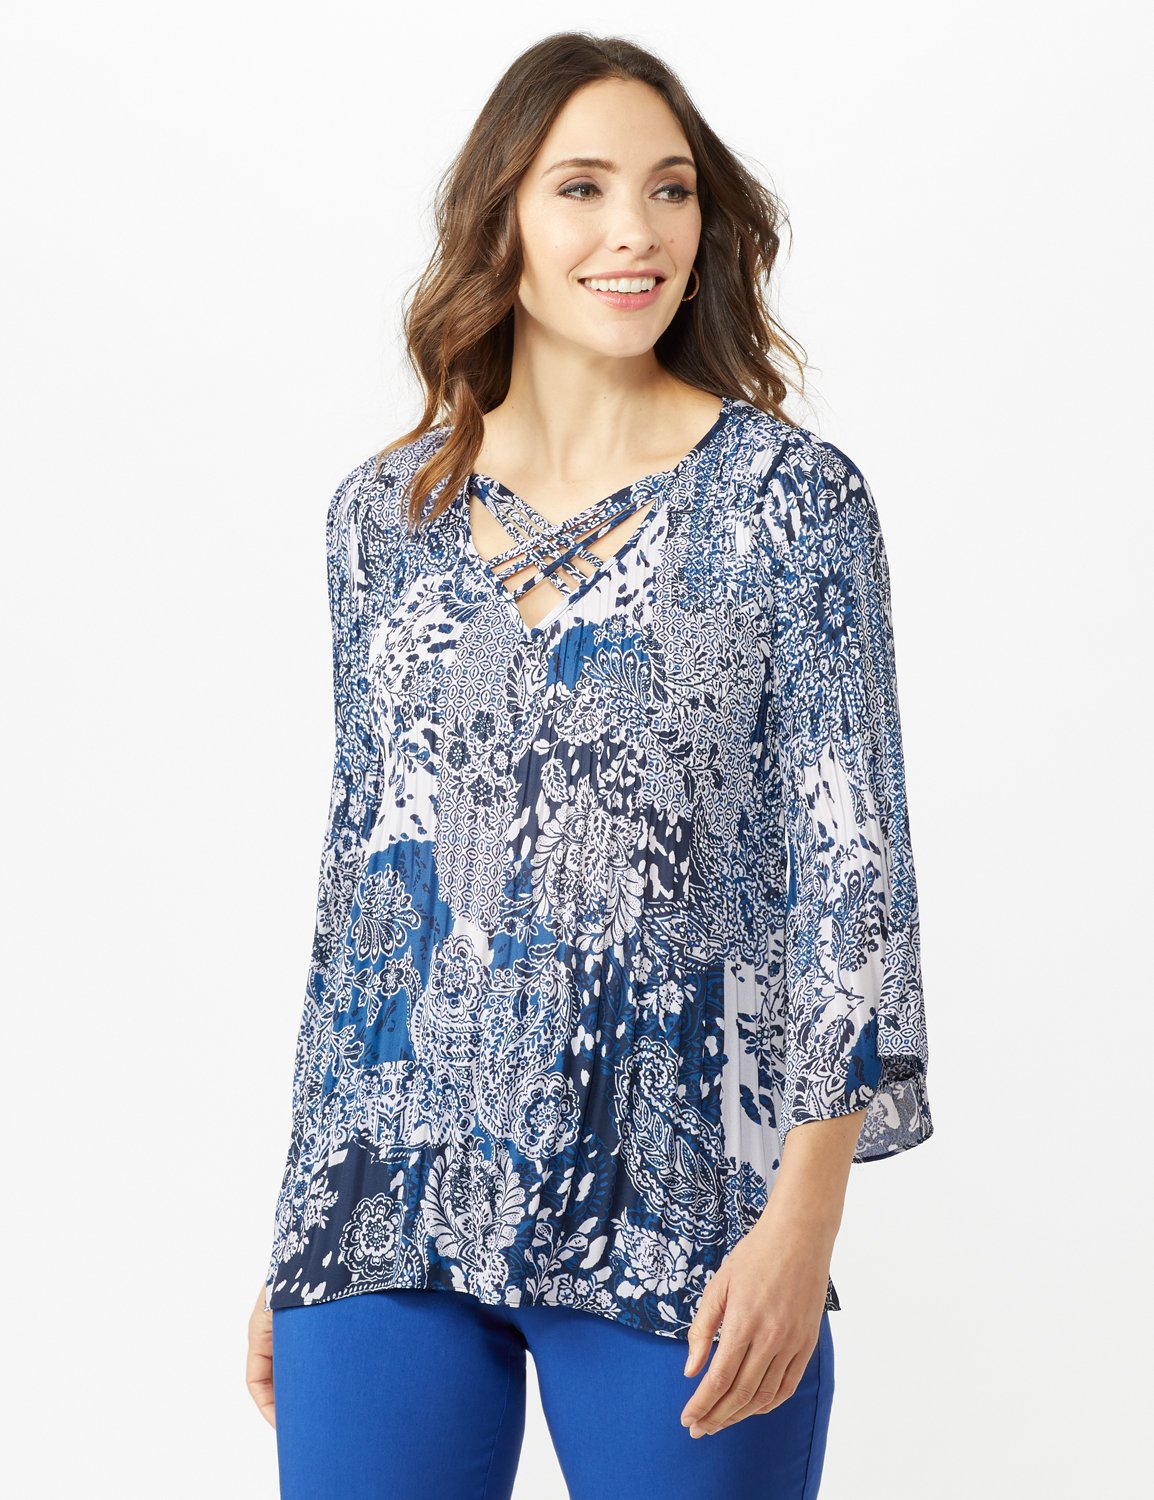 Paisley Box Pleat Blouse - Blue/Ivory - Alternate Image